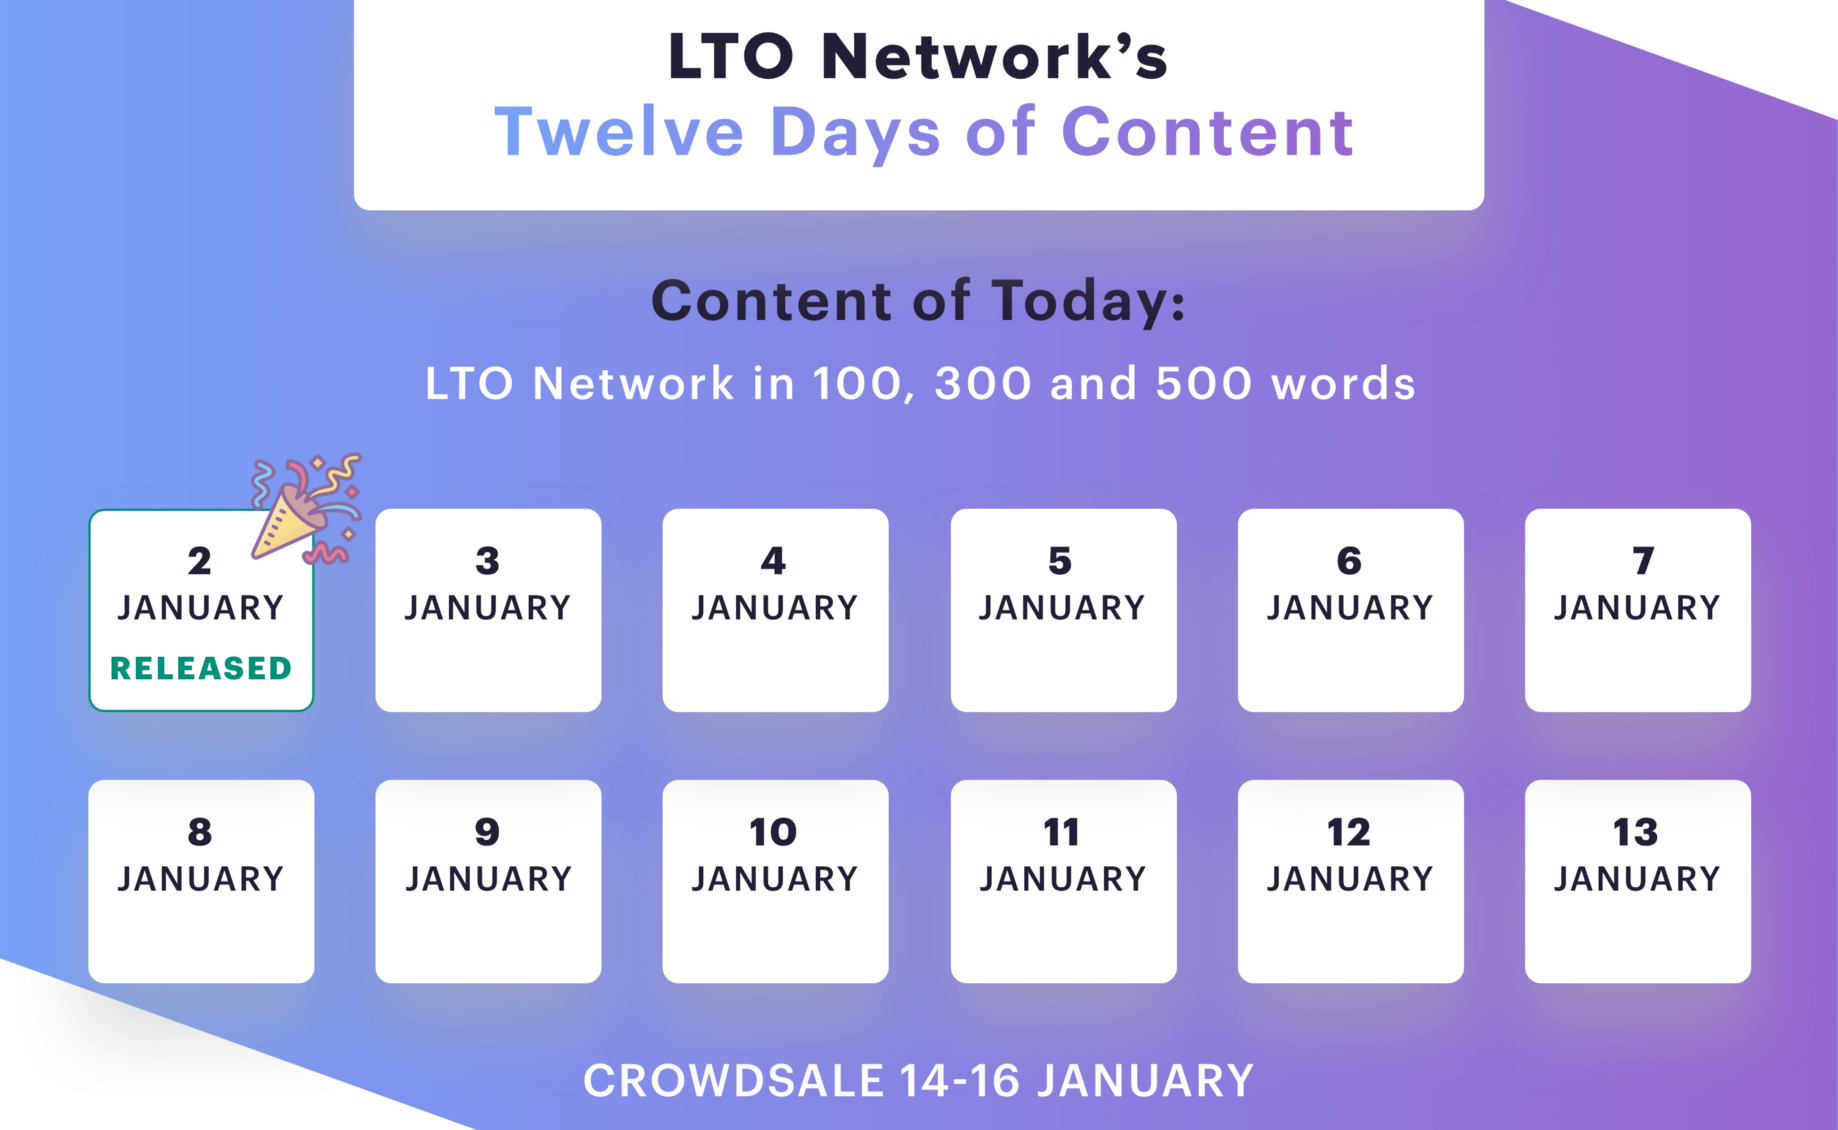 LTO Network in 100, 300 and 500 words - LTO Network - Medium